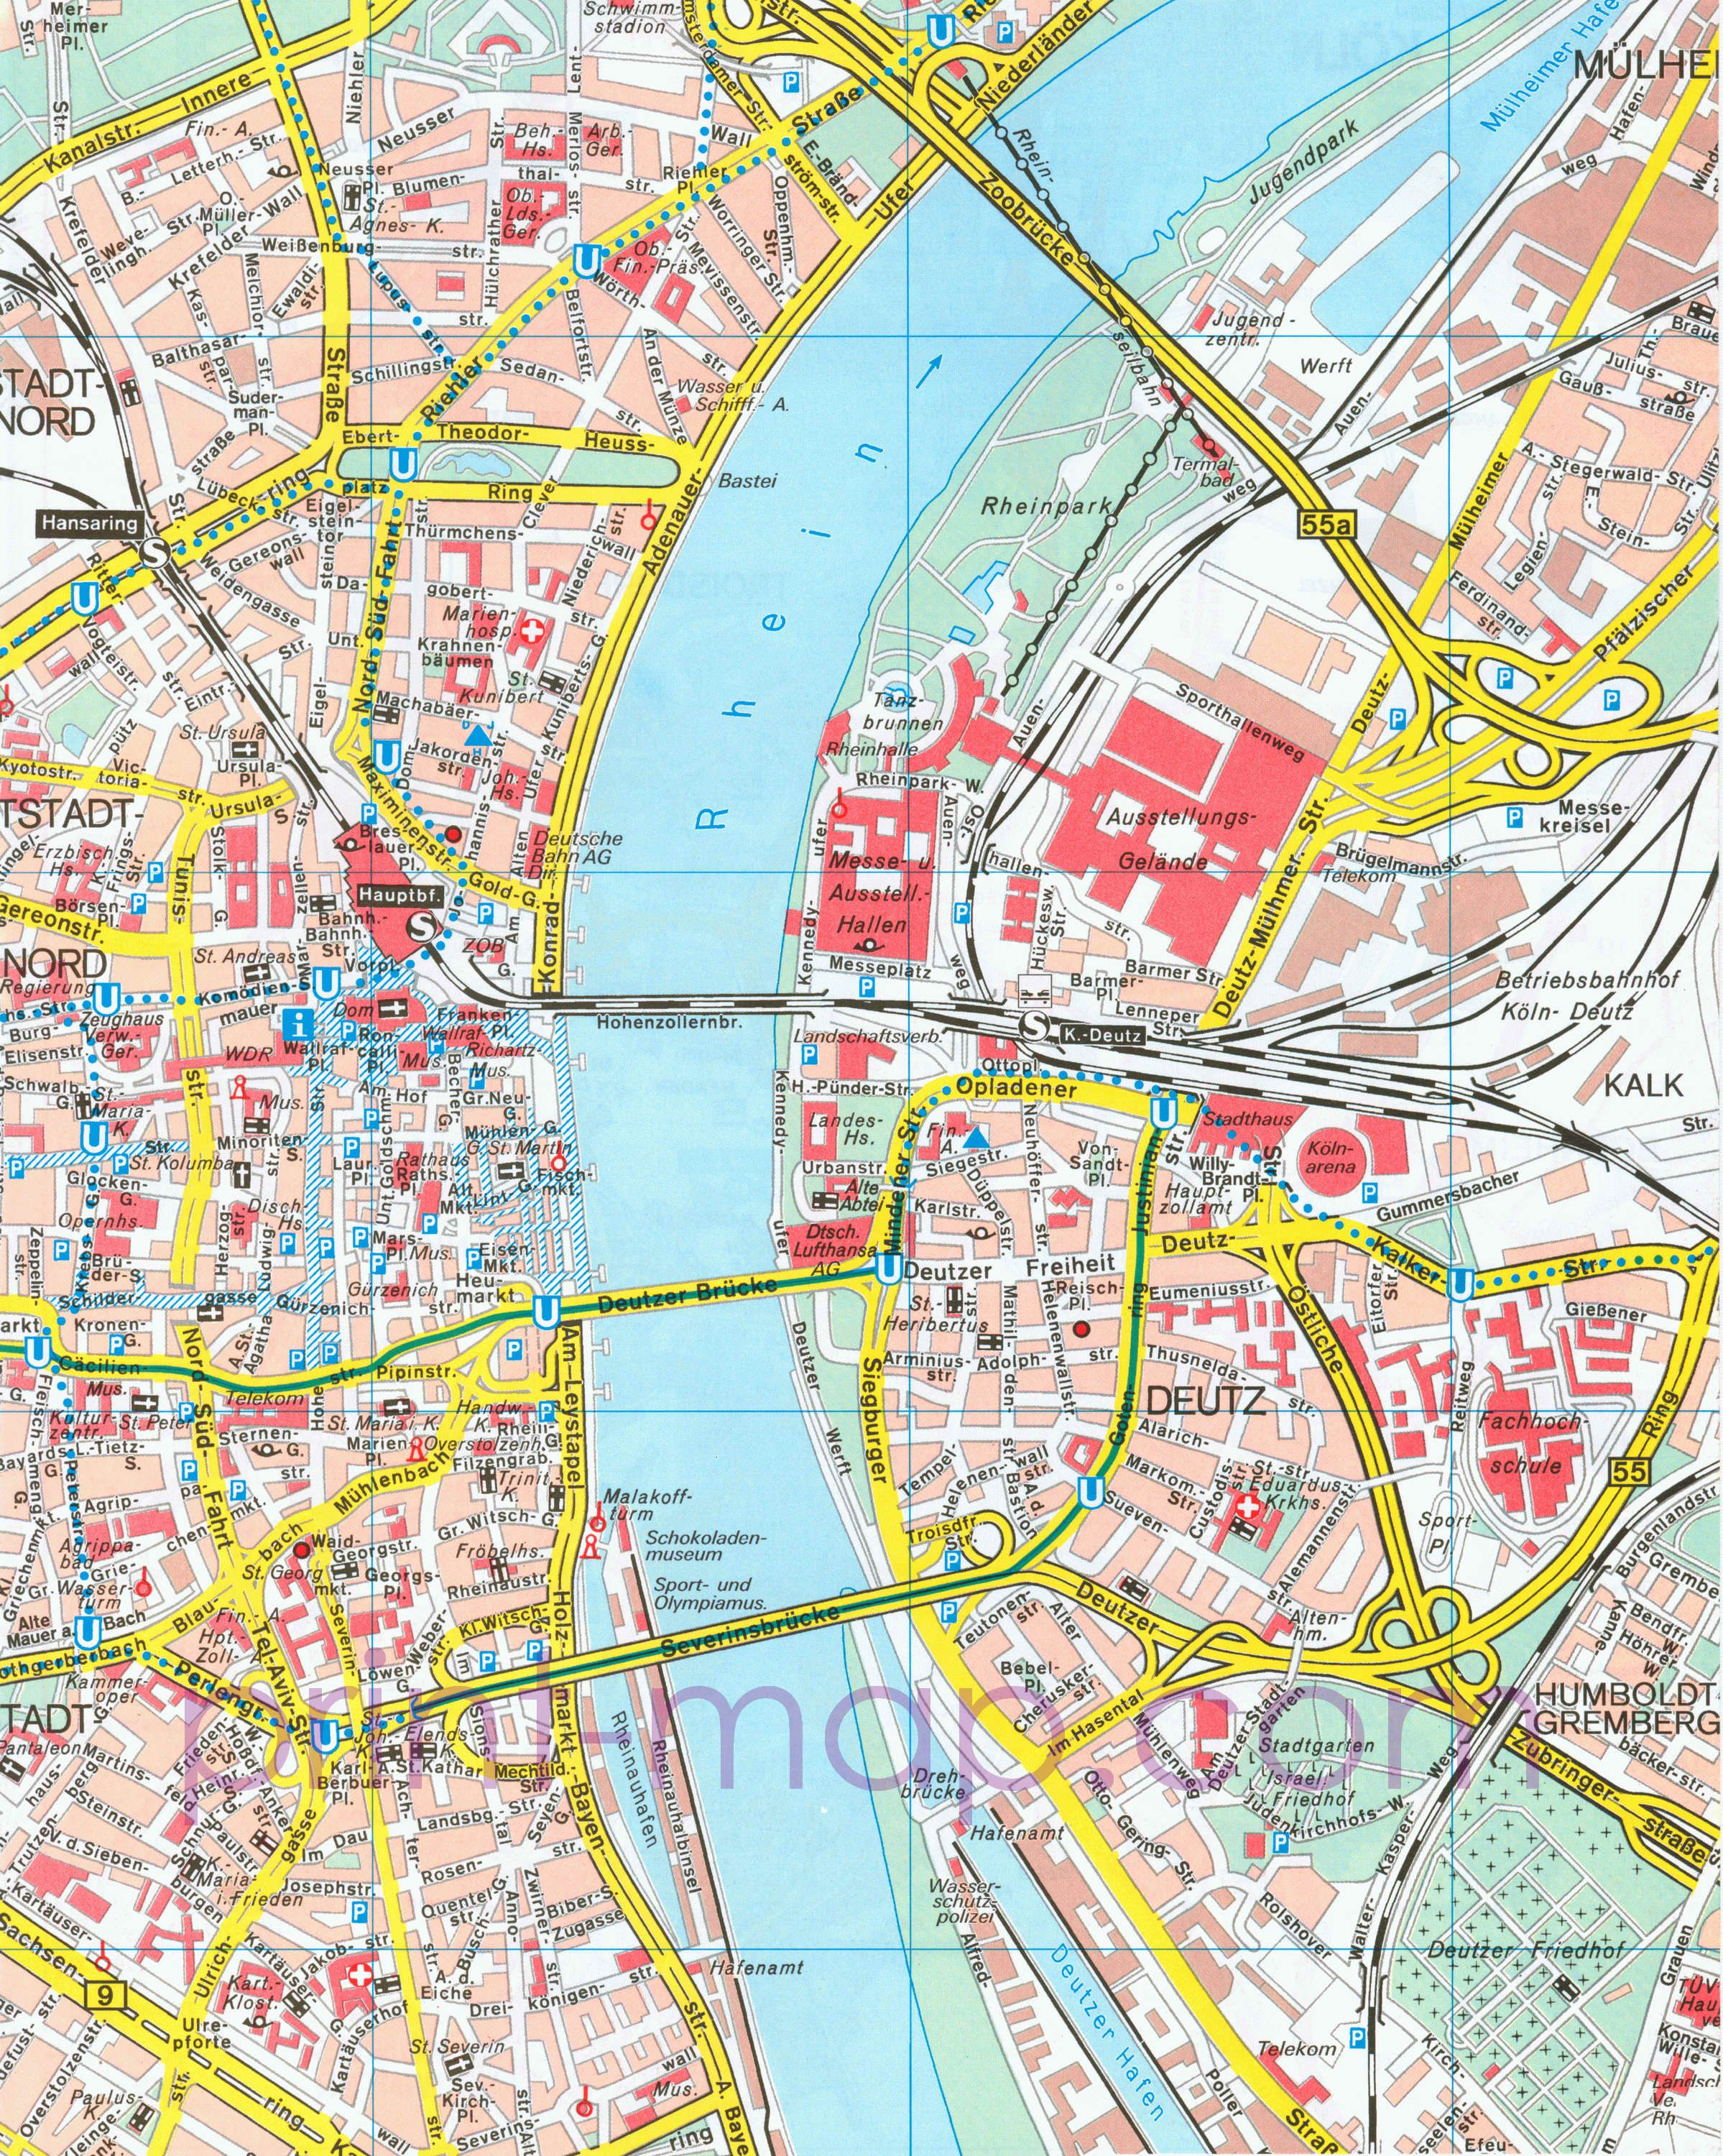 PDF Map of Cologne Germany Maps Maps maps Any and All